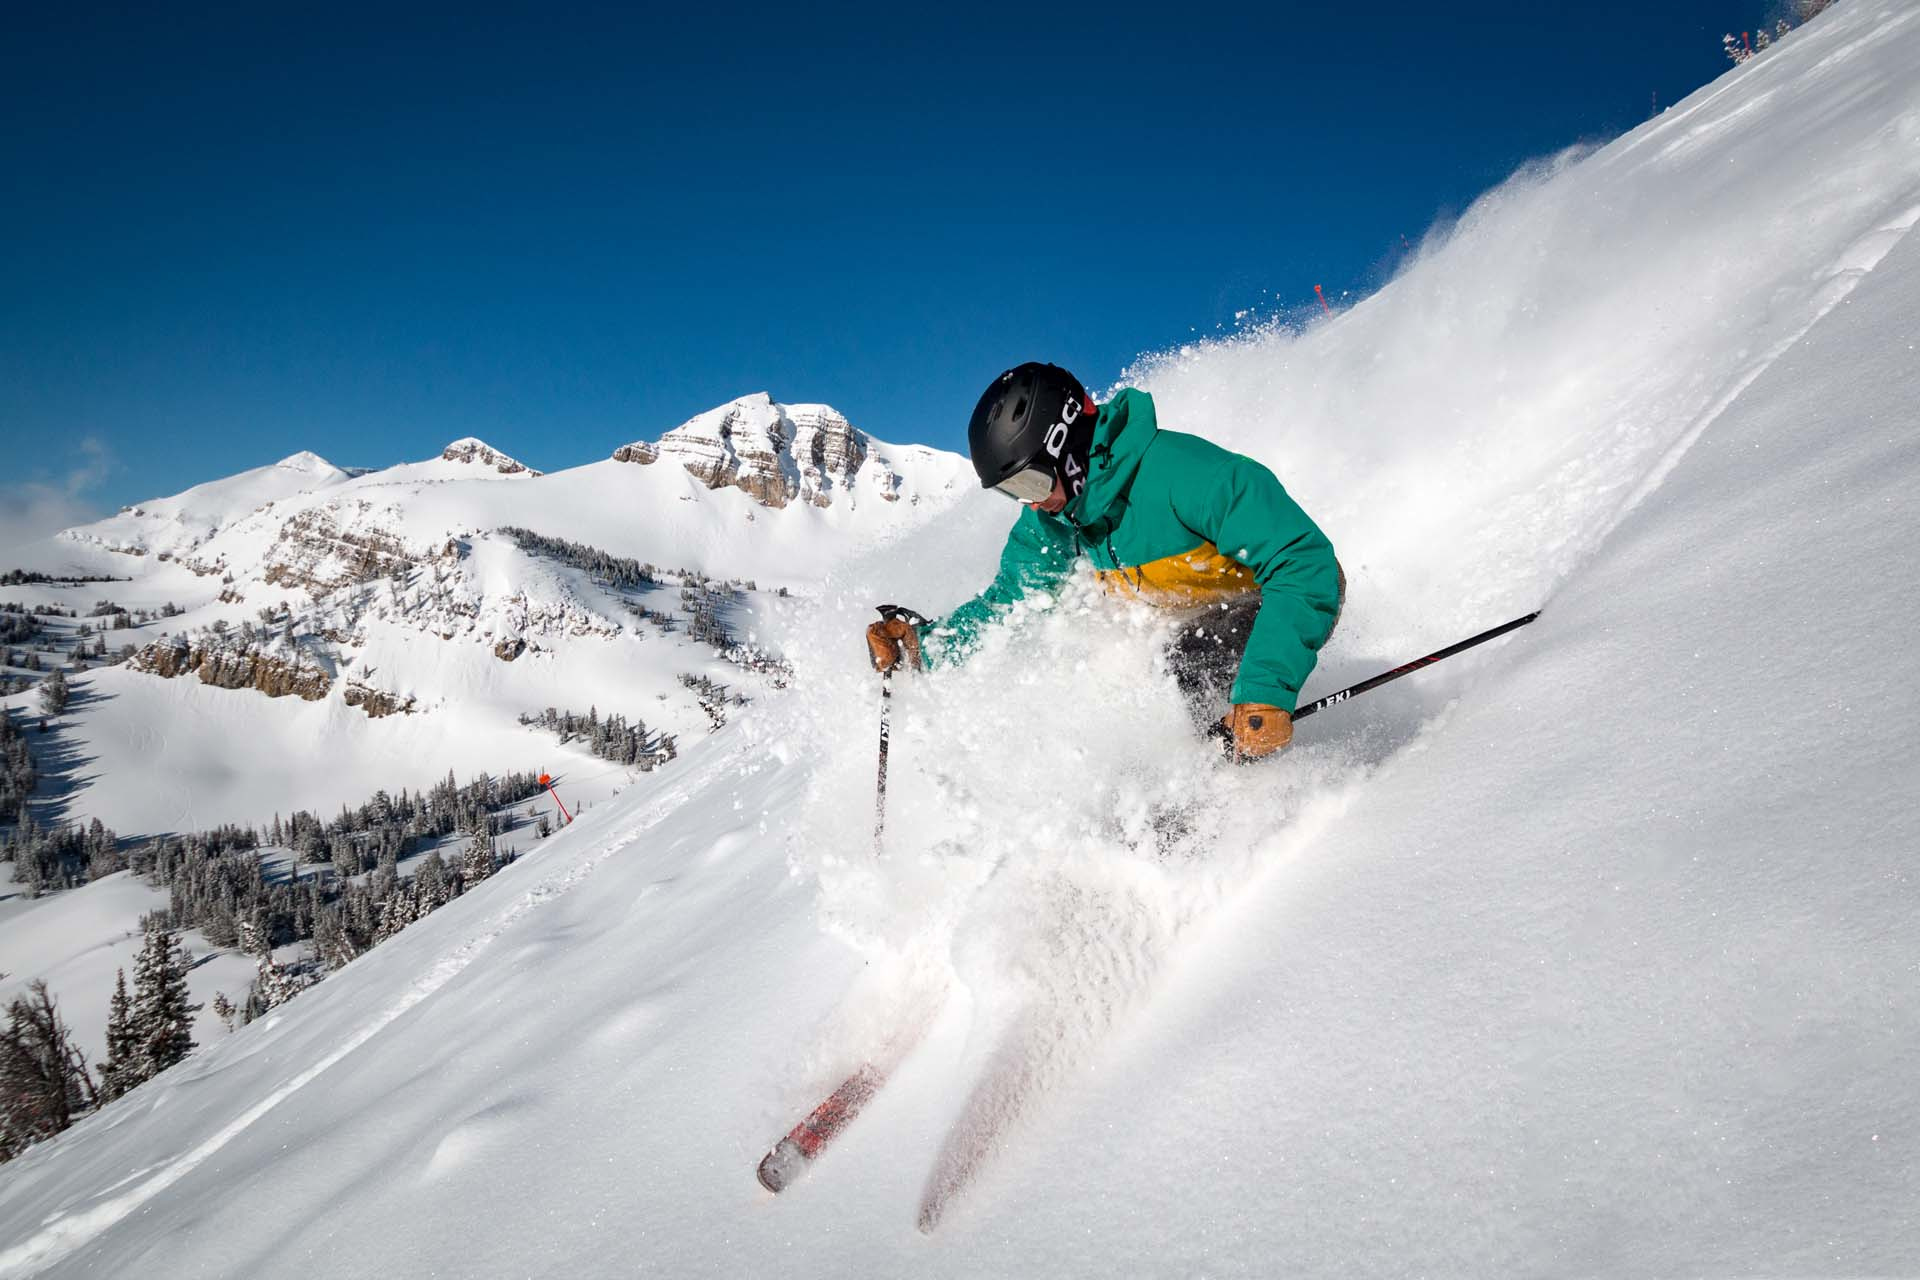 Ski powder snow at Jackson Hole Mountain Resort in Teton Village in Jackson Hole Wyoming